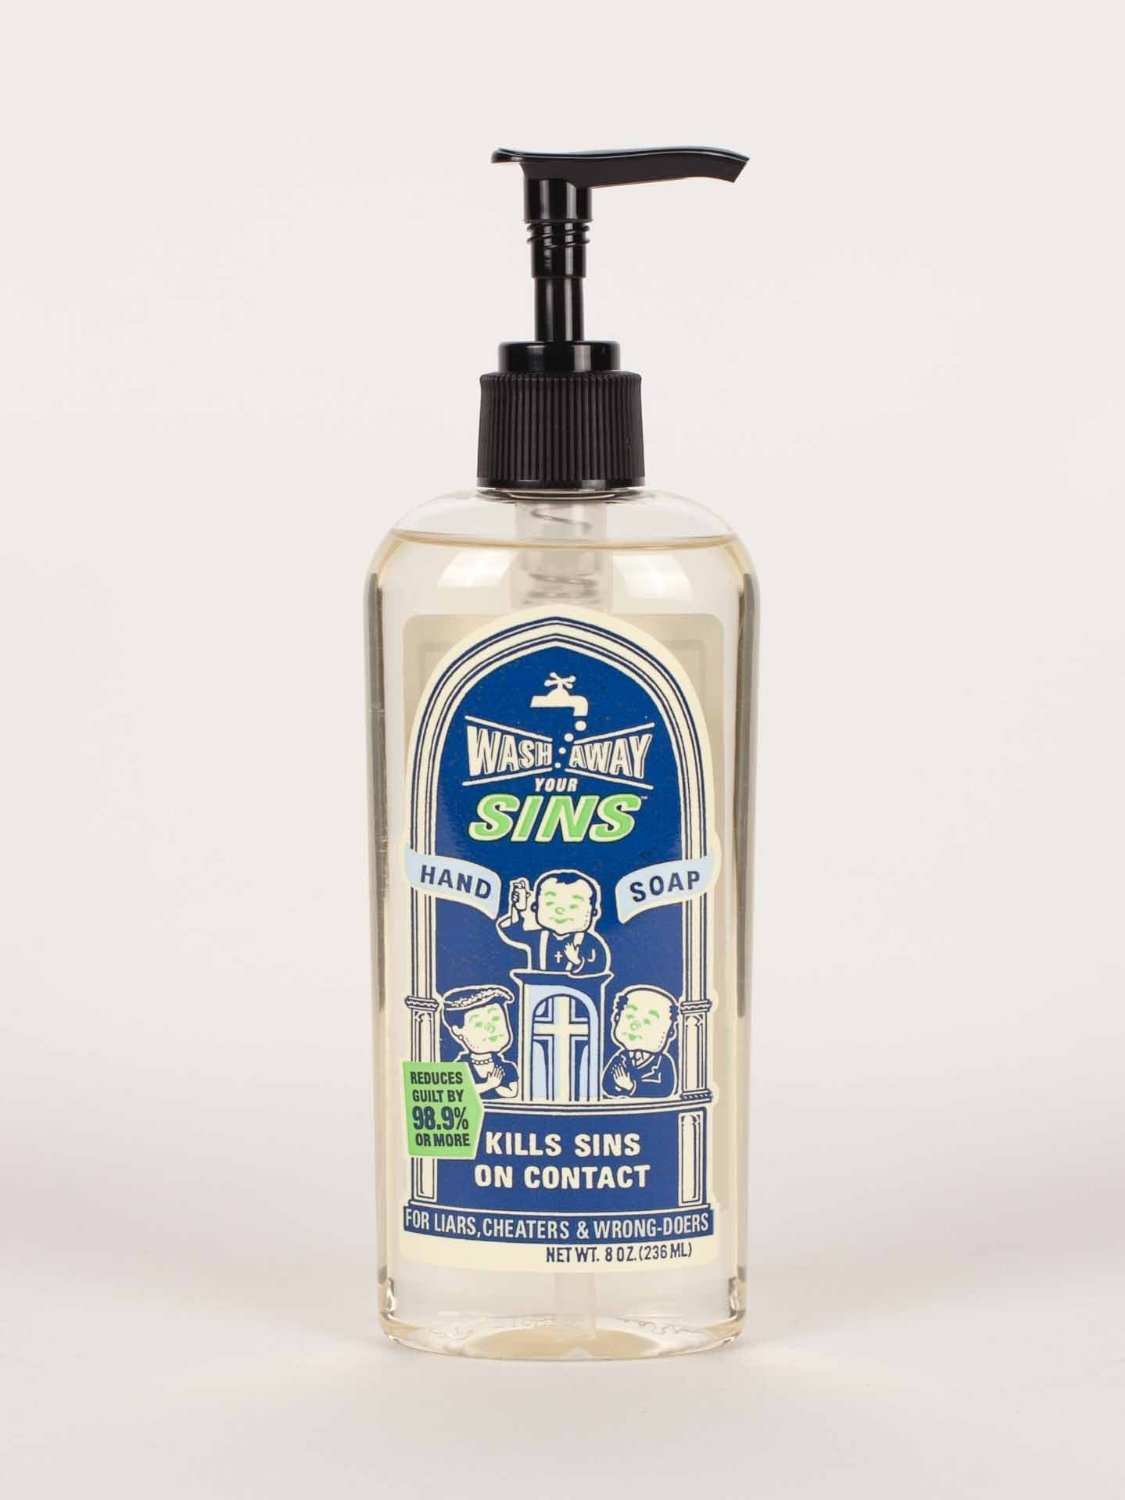 BlueQ Wash Away Your Sins Liquid Hand Soap, 8 oz